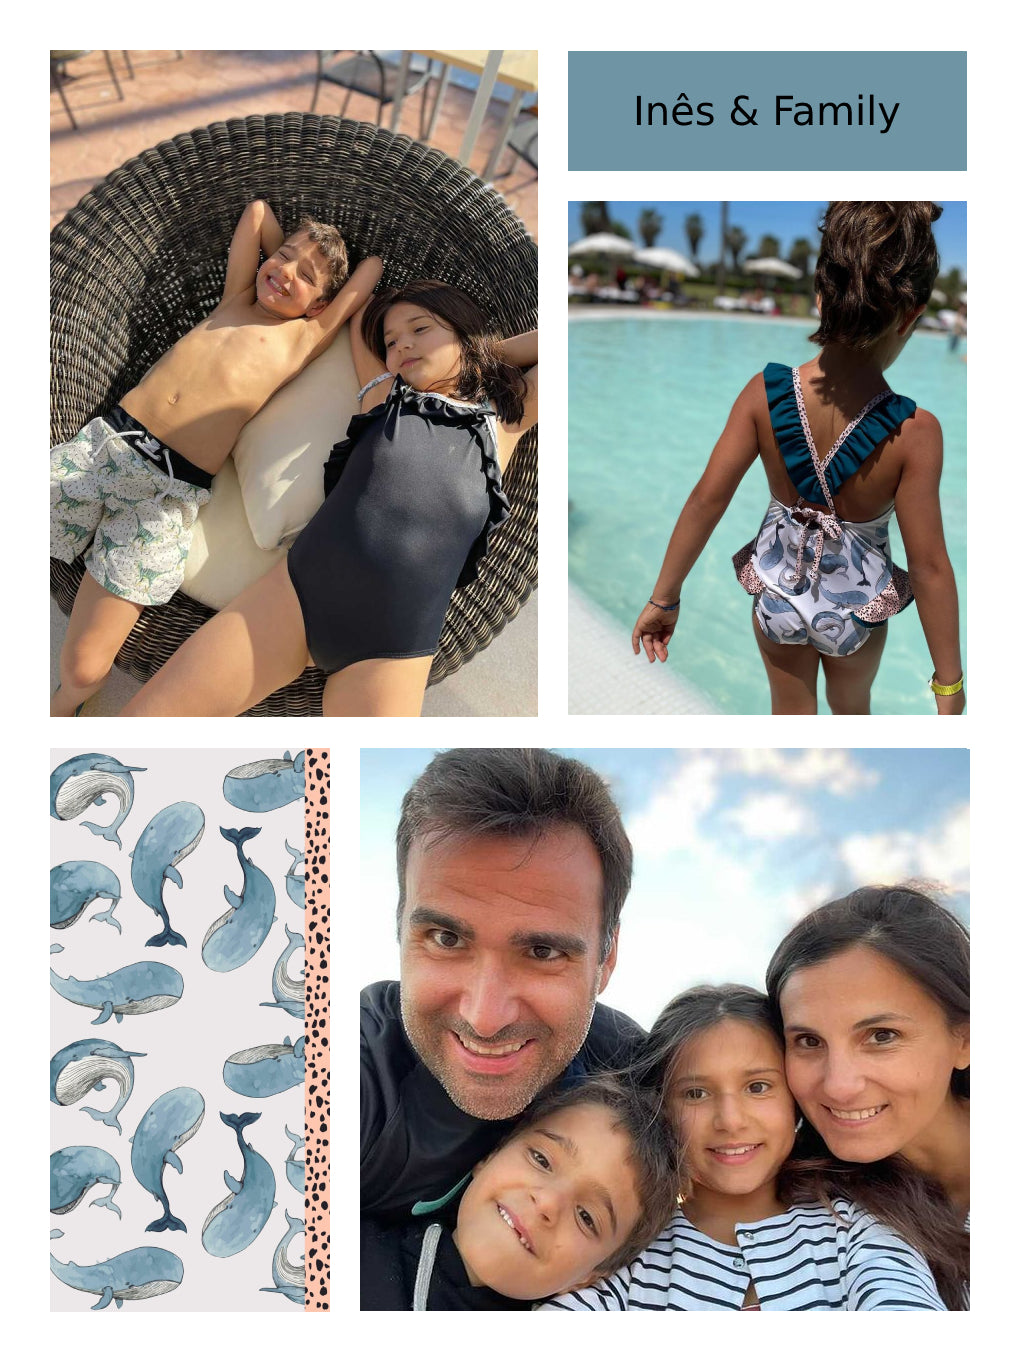 interview-with-ines-from-paper-boat-swimwear